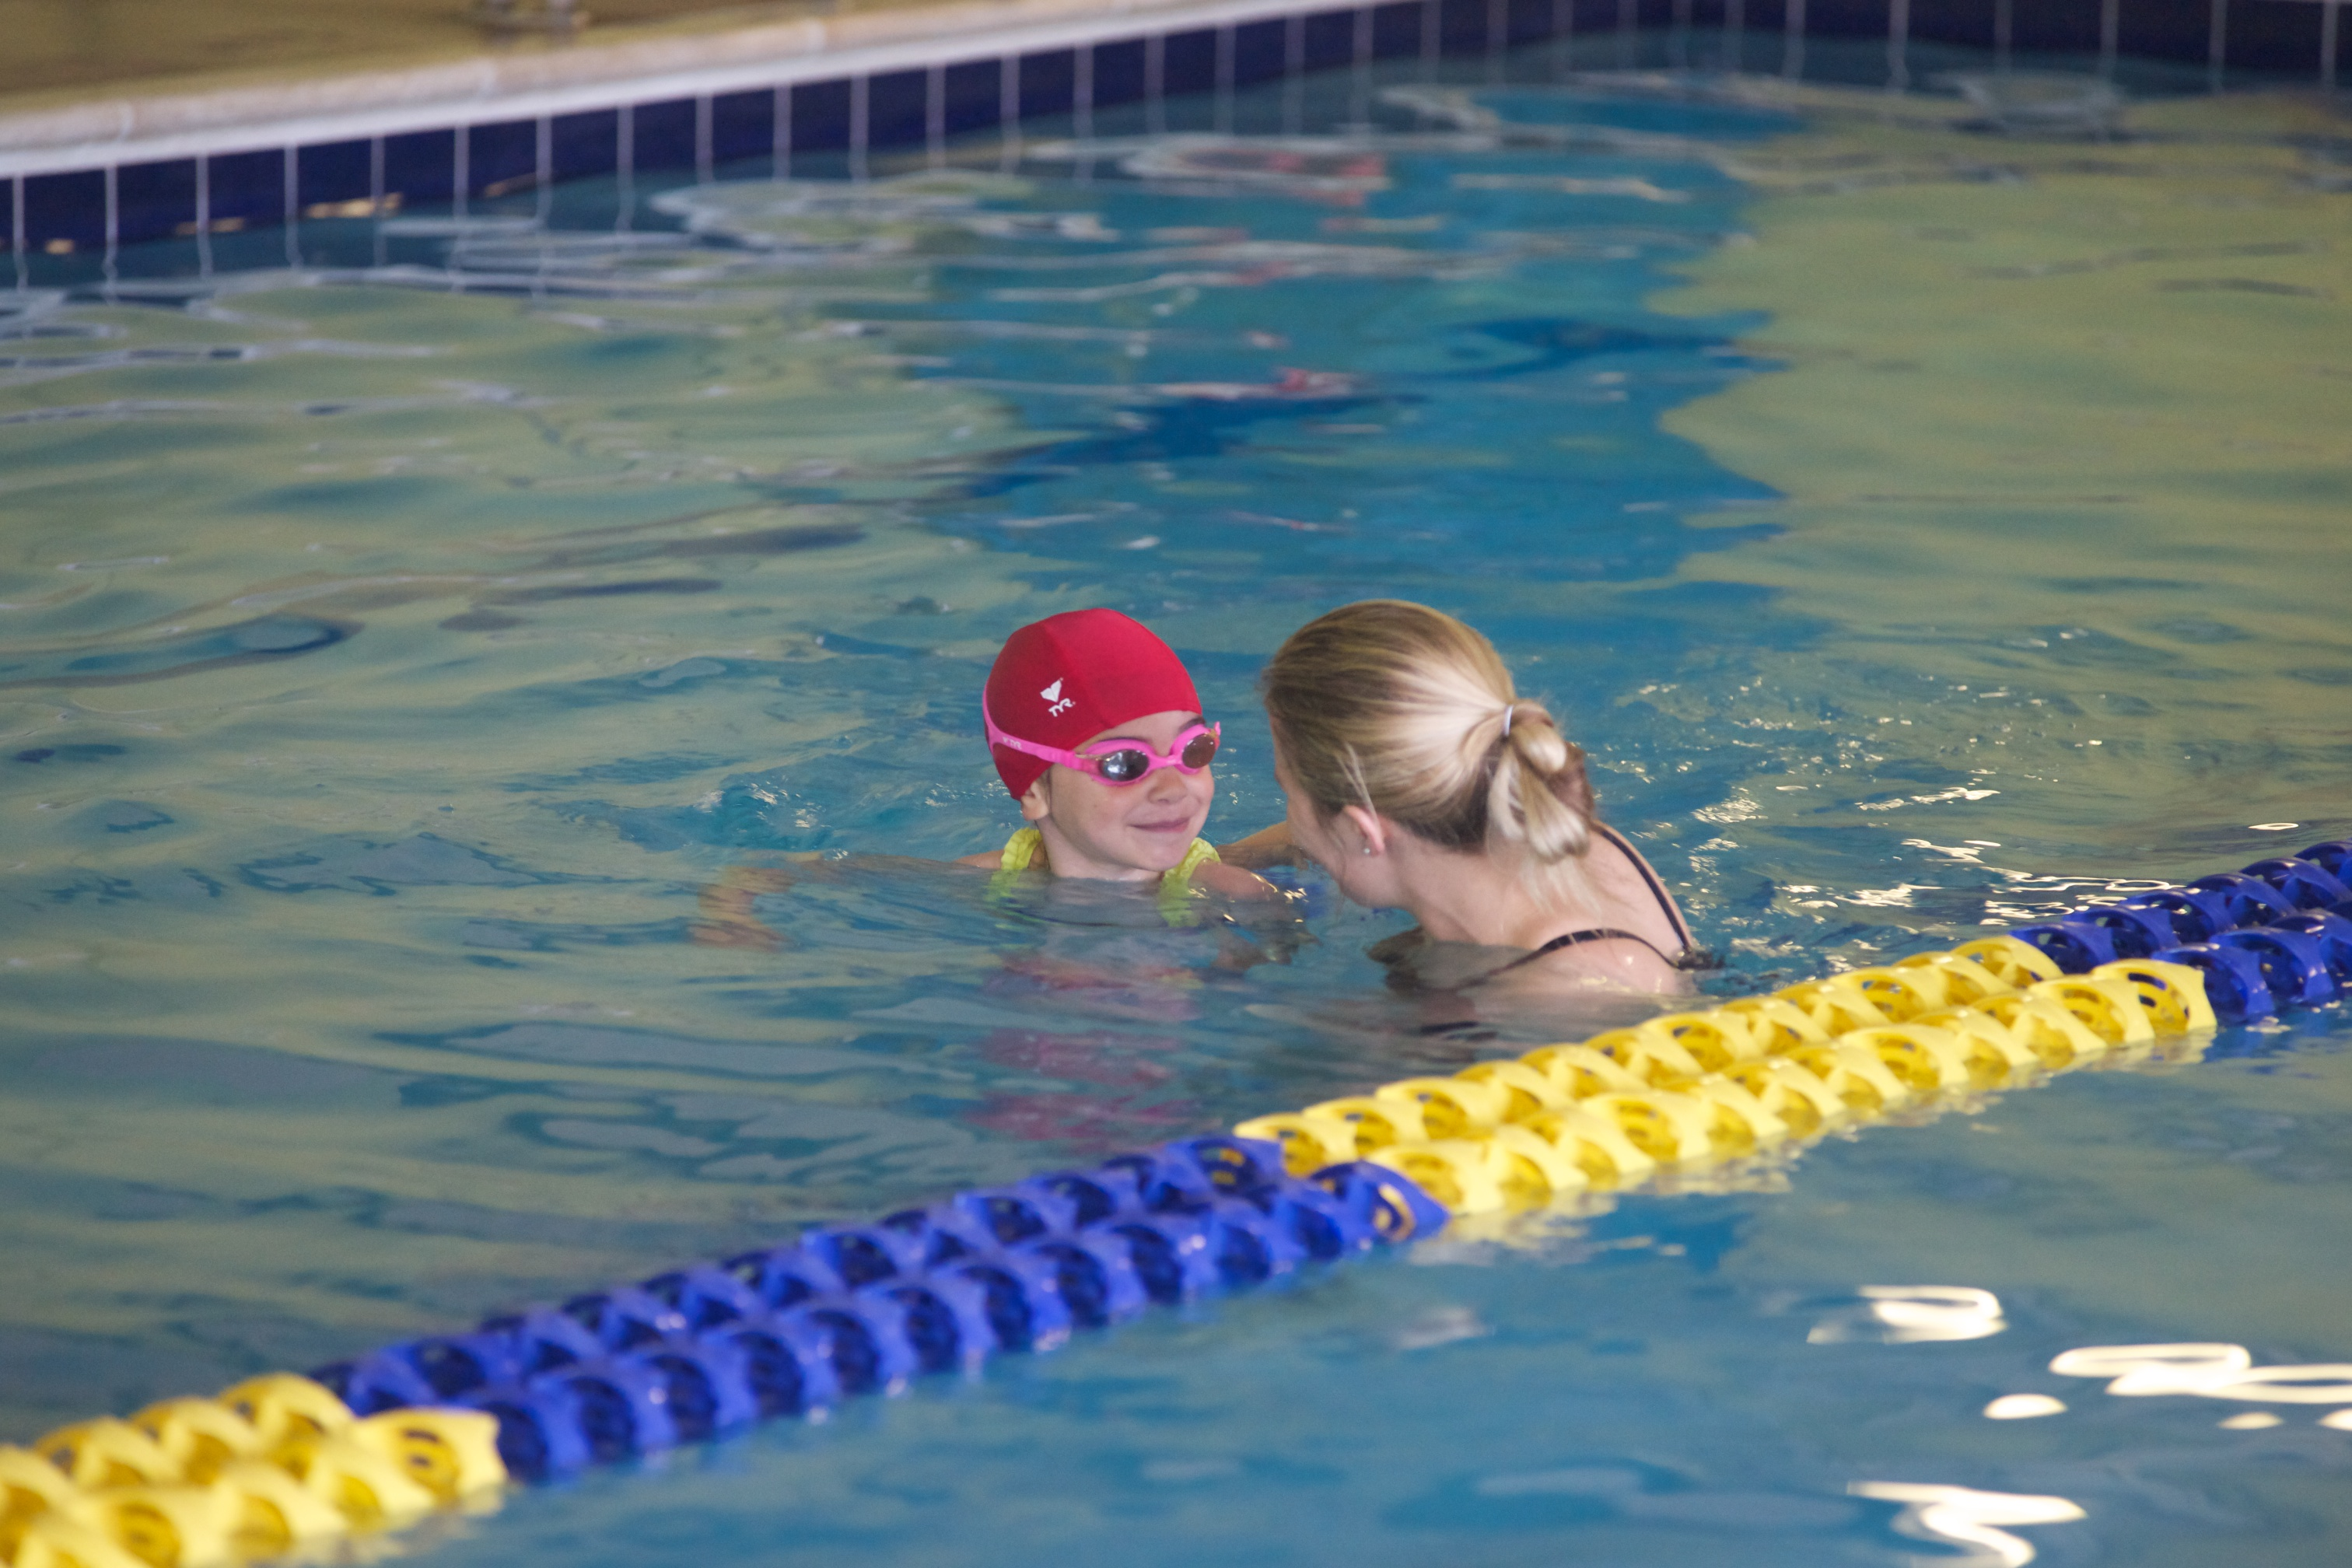 Unusual Private Swim Lessons Swim Raintree Athletic Club Up Who Are Looking A More Individualized Time A Certified Swim Coach Is A Option Forchildren Ages Lessons houzz 01 Raintree Athletic Club